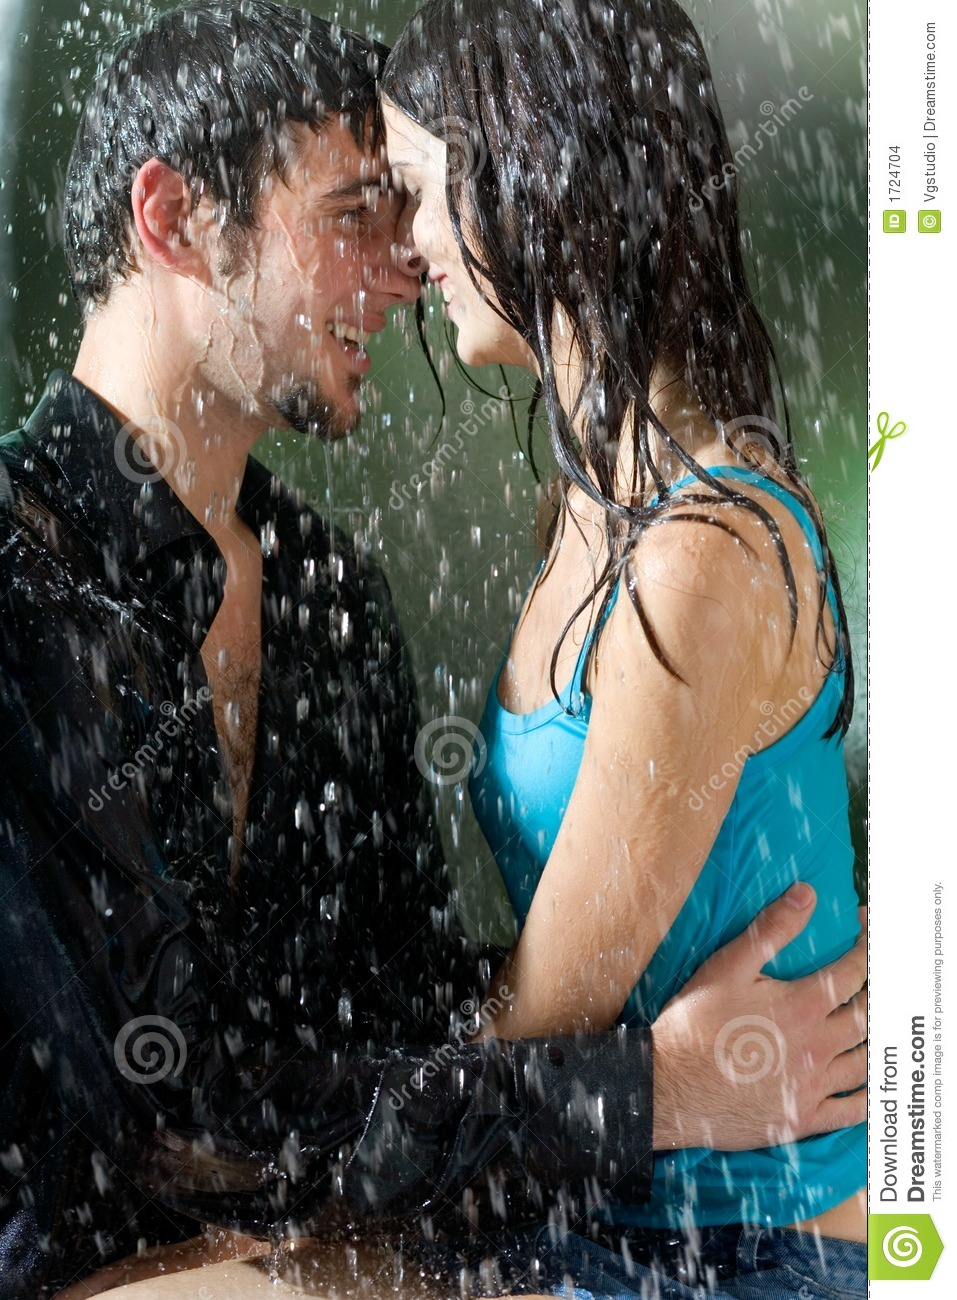 Sex rain stock images download 246 royalty free photos